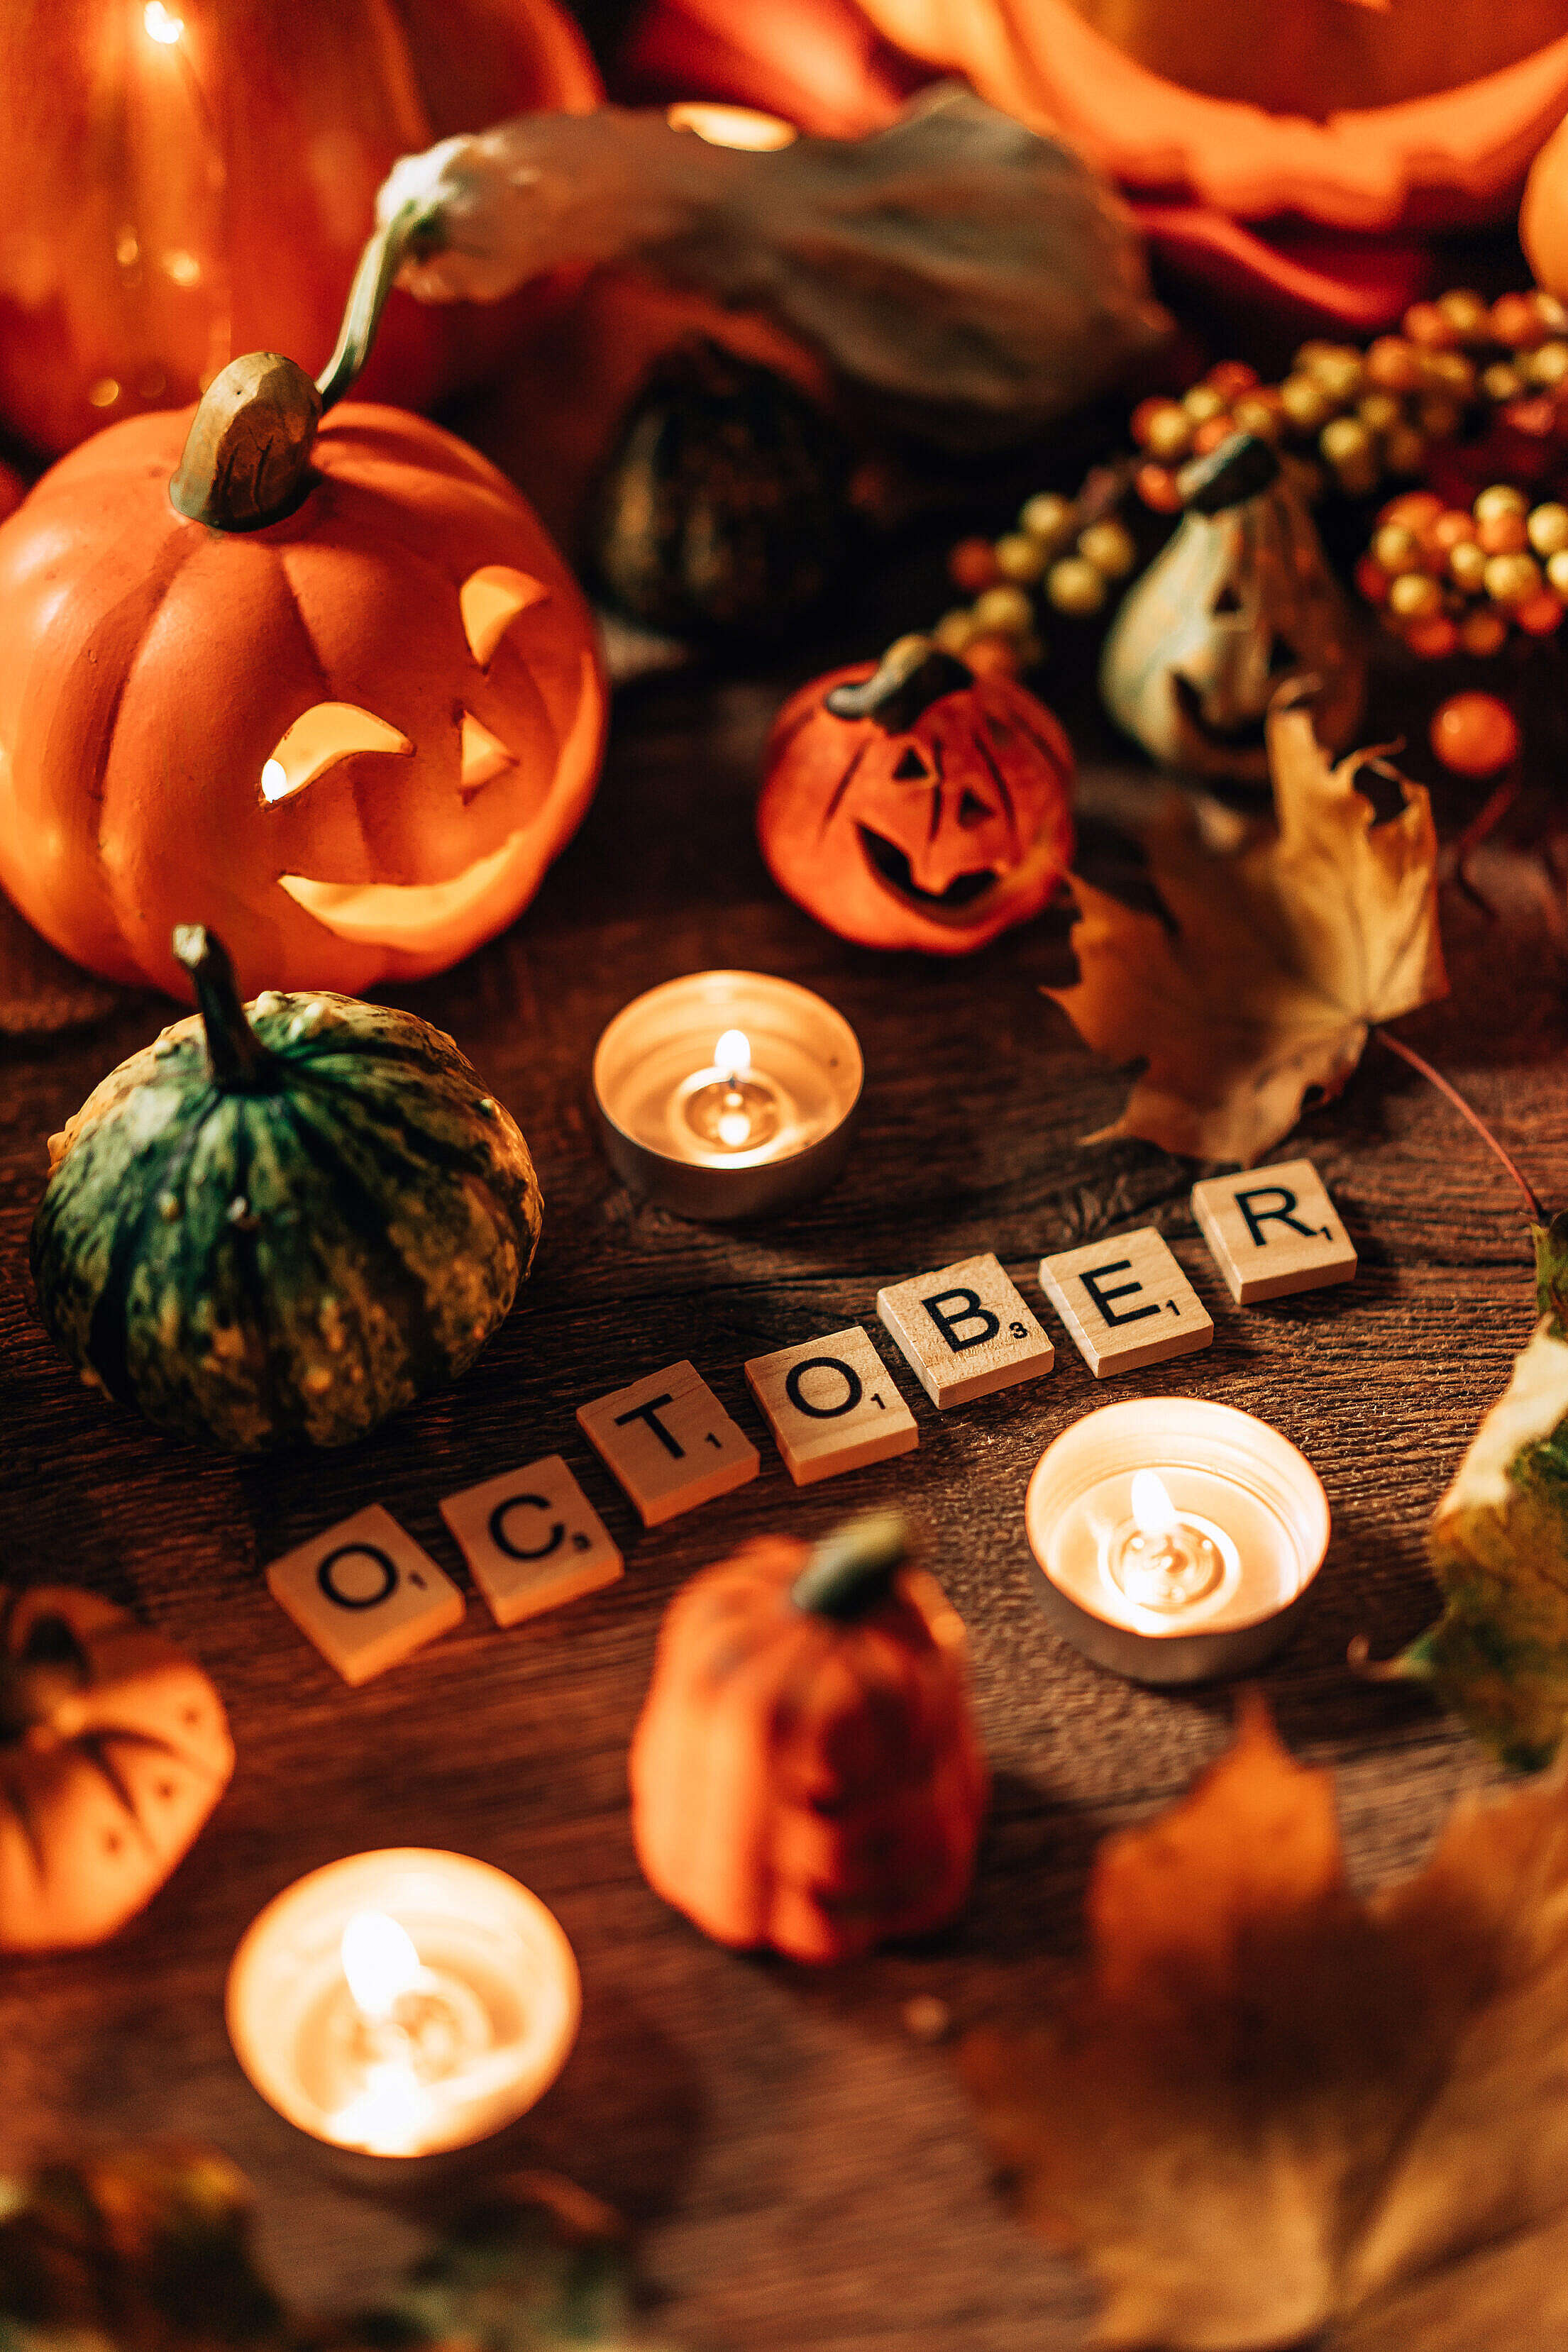 Halloween Still Life with October Scrabble Tiles Free Stock Photo